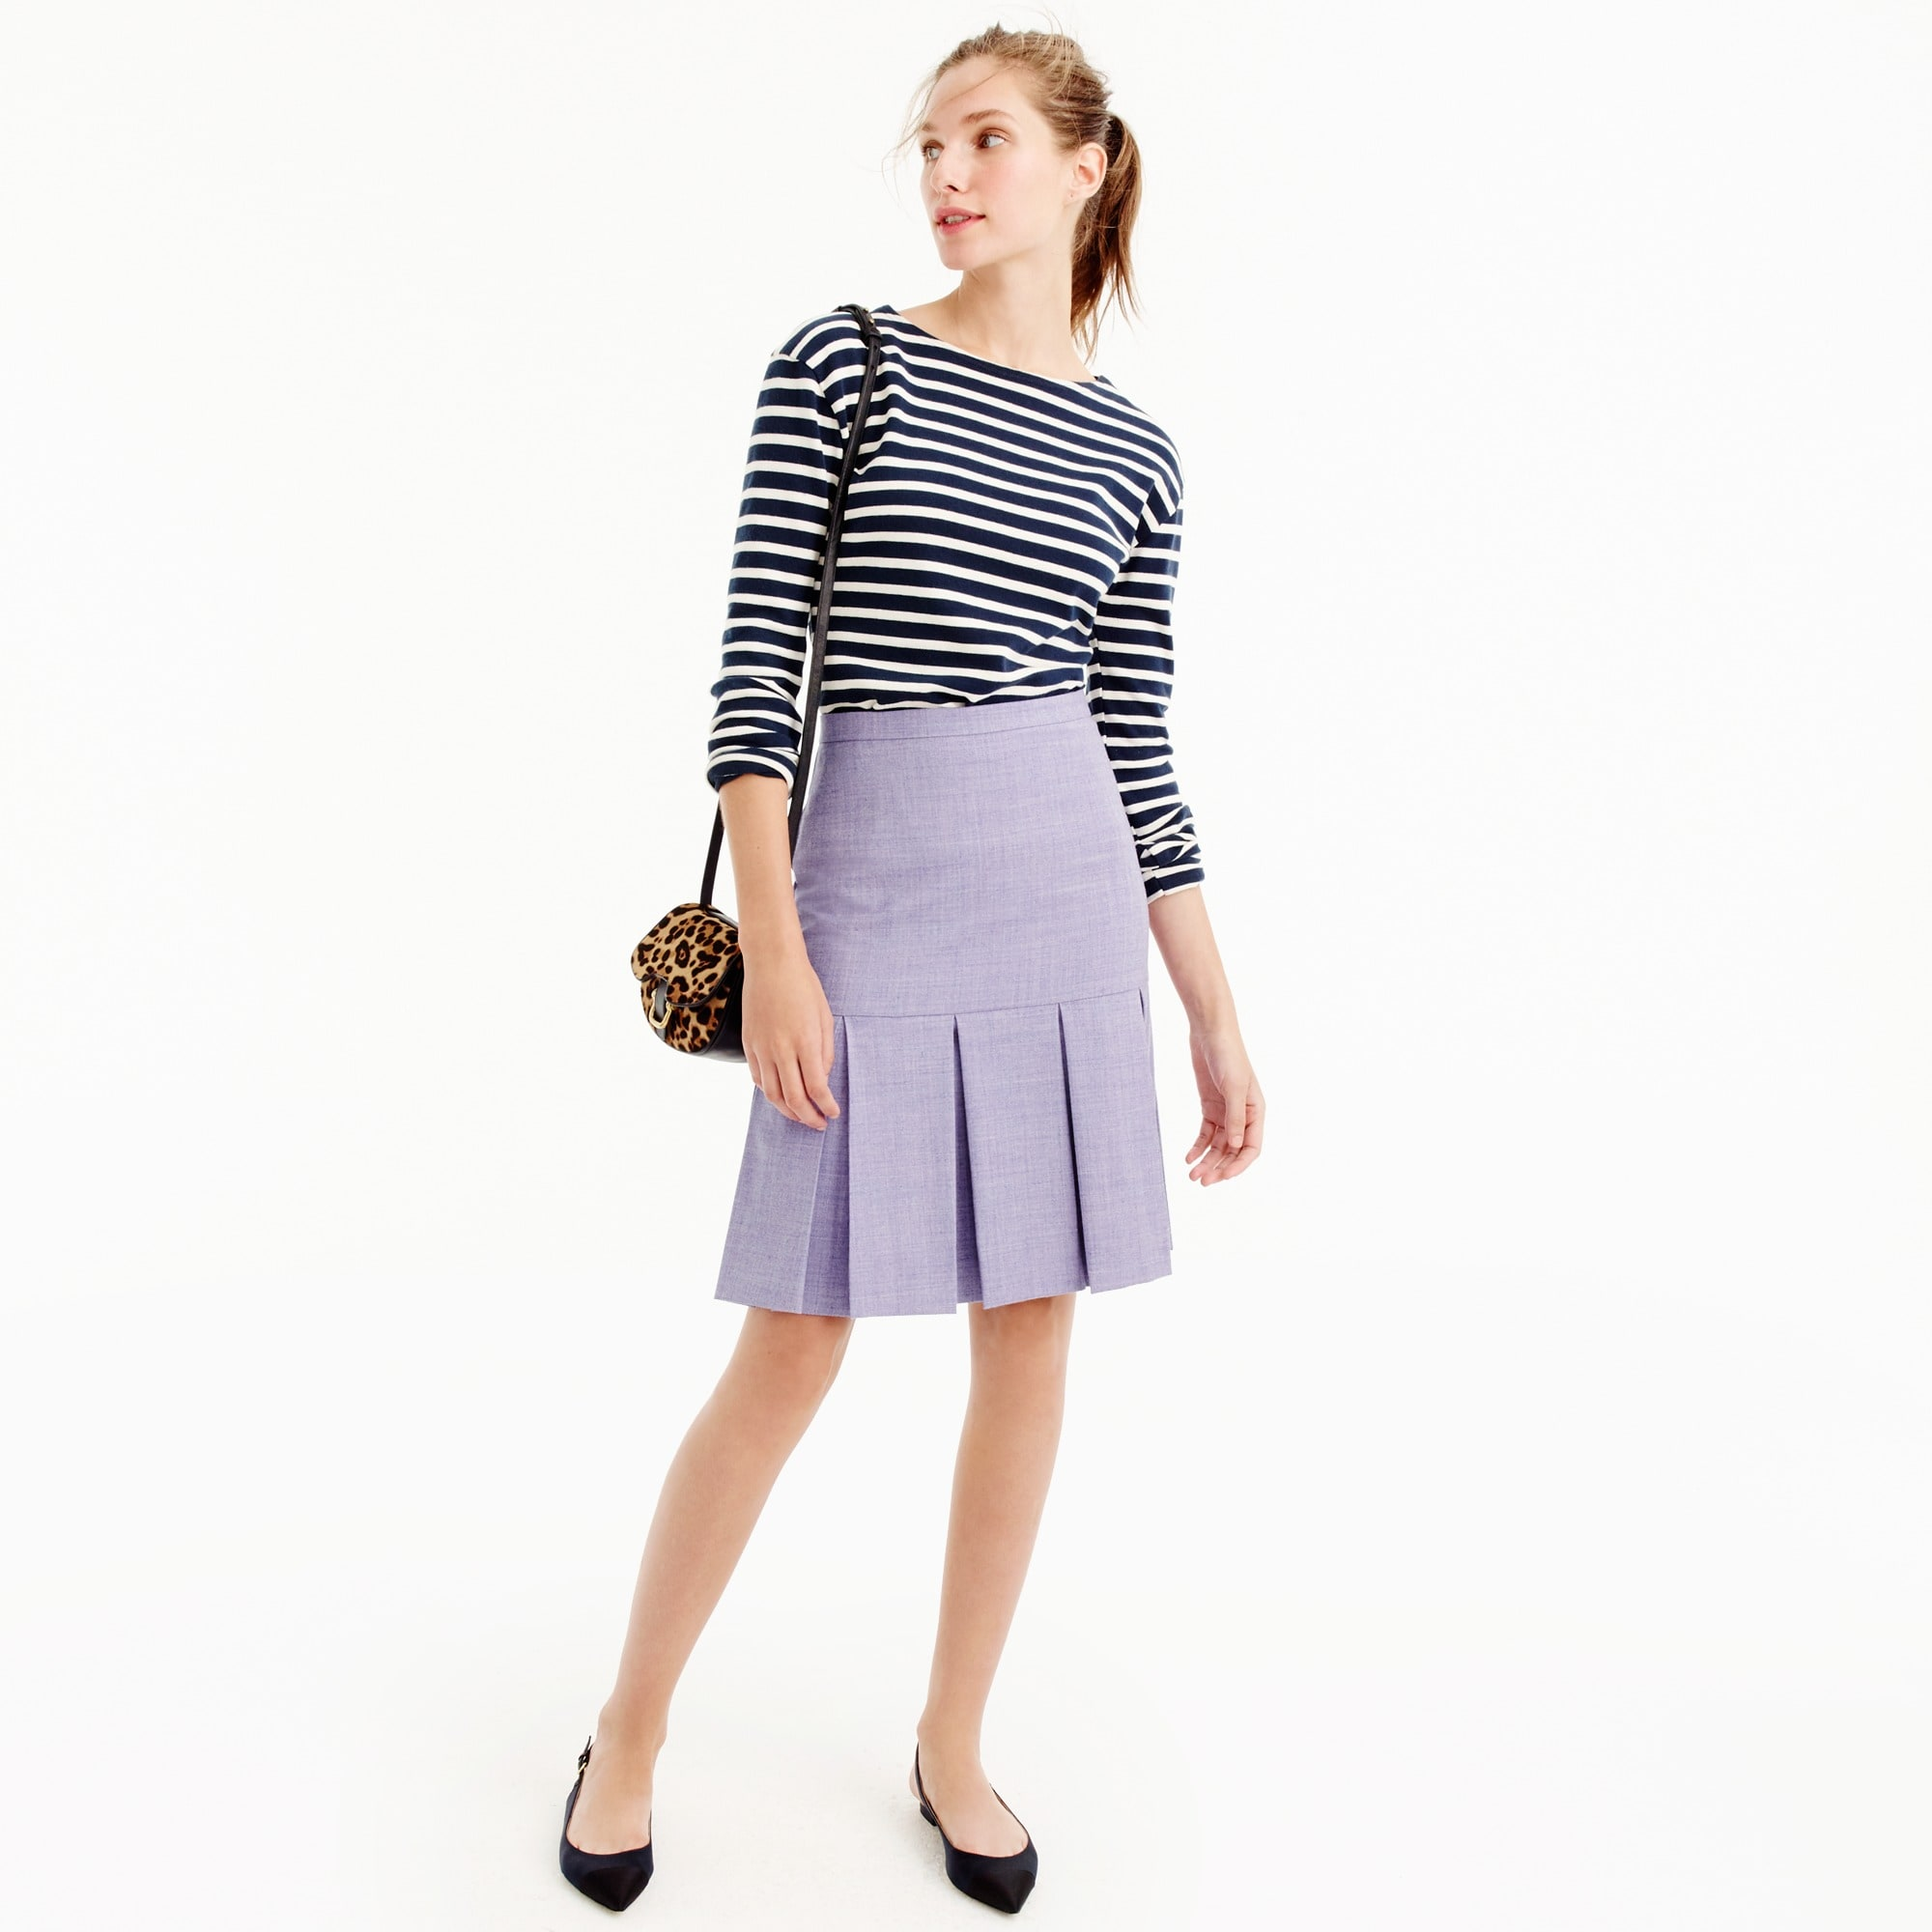 Petite box-pleated skirt in wool flannel